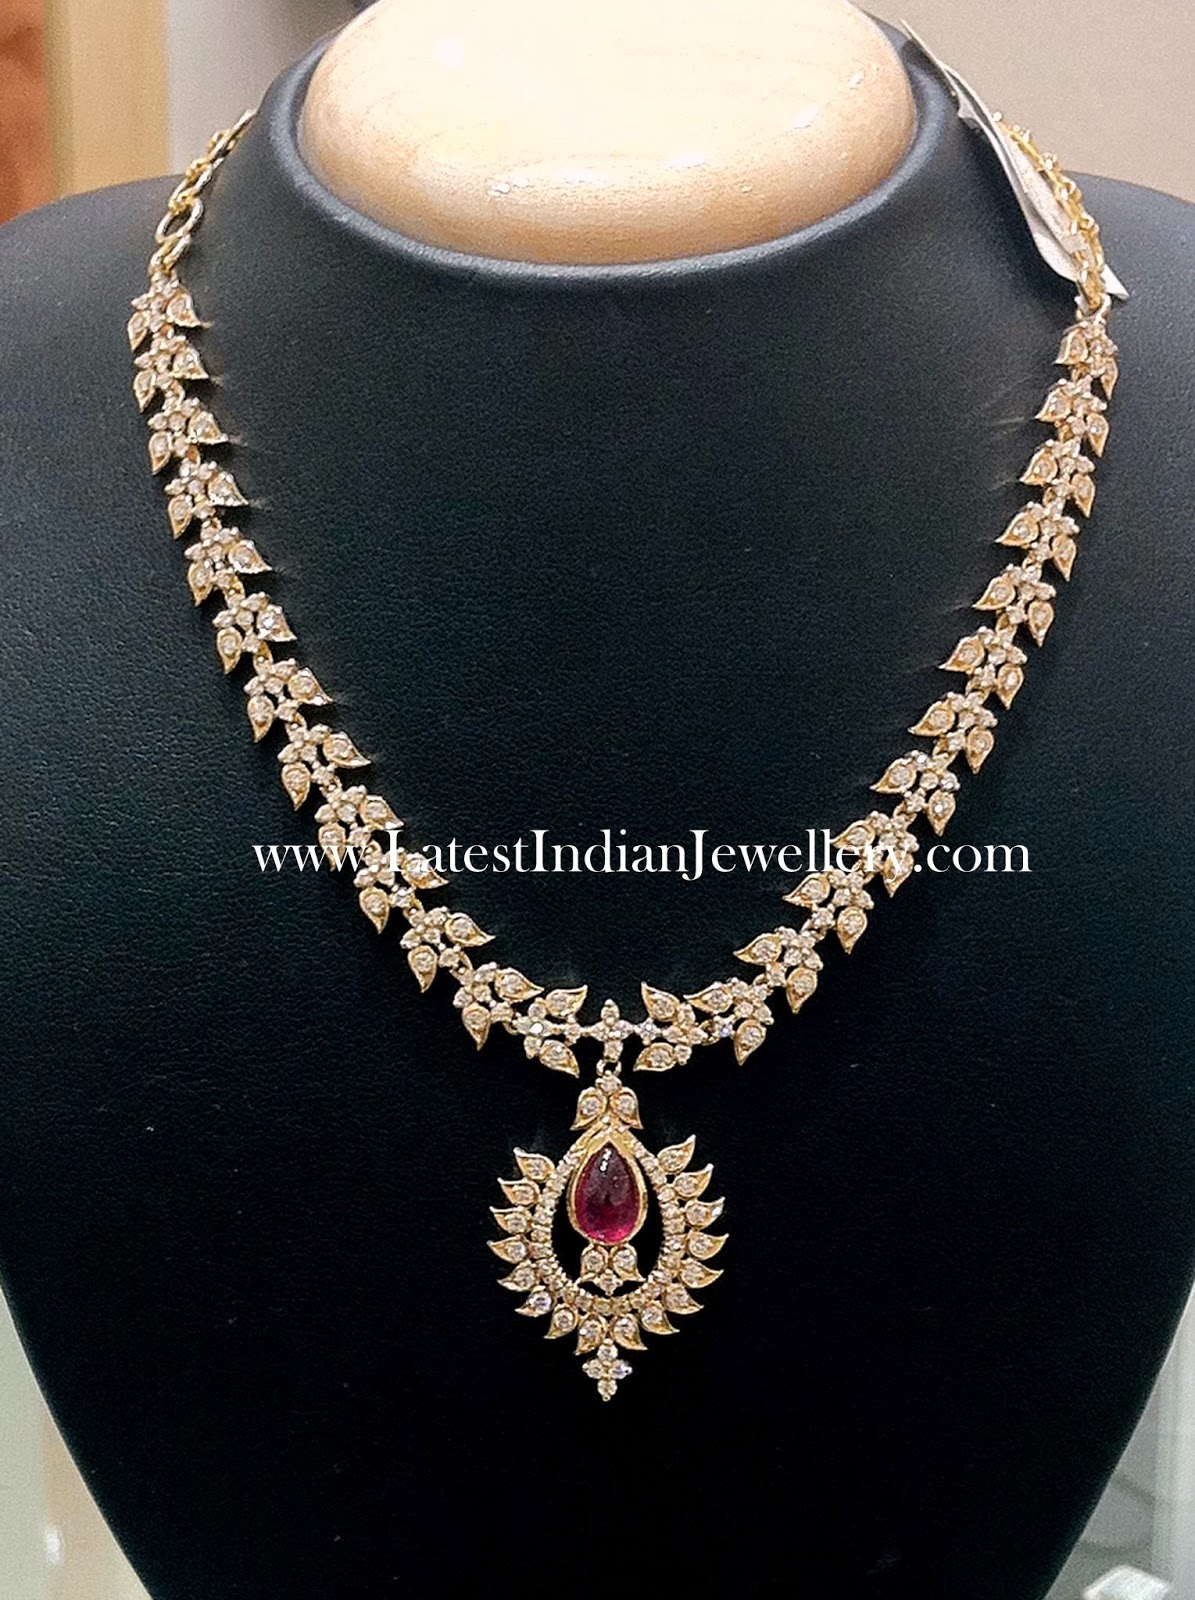 Diamond Necklace with Oval Ruby